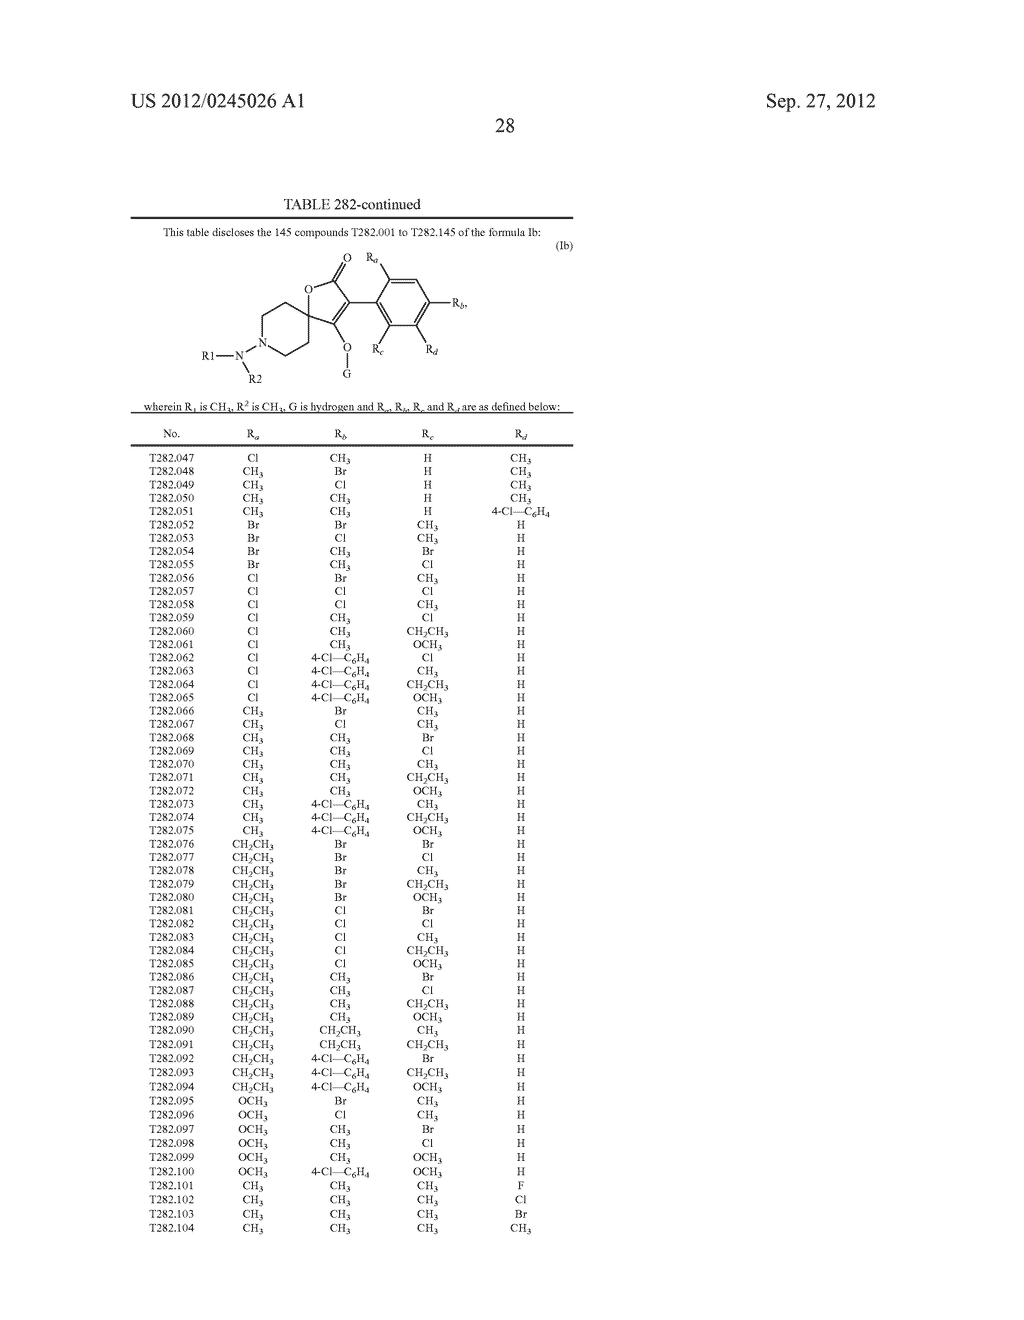 SPIRO FUSED 1-AMINO - PIPERDINE PYRROLIDINE DIONE DERIVATIVES WITH     PESTICIDAL ACTIVITY - diagram, schematic, and image 29